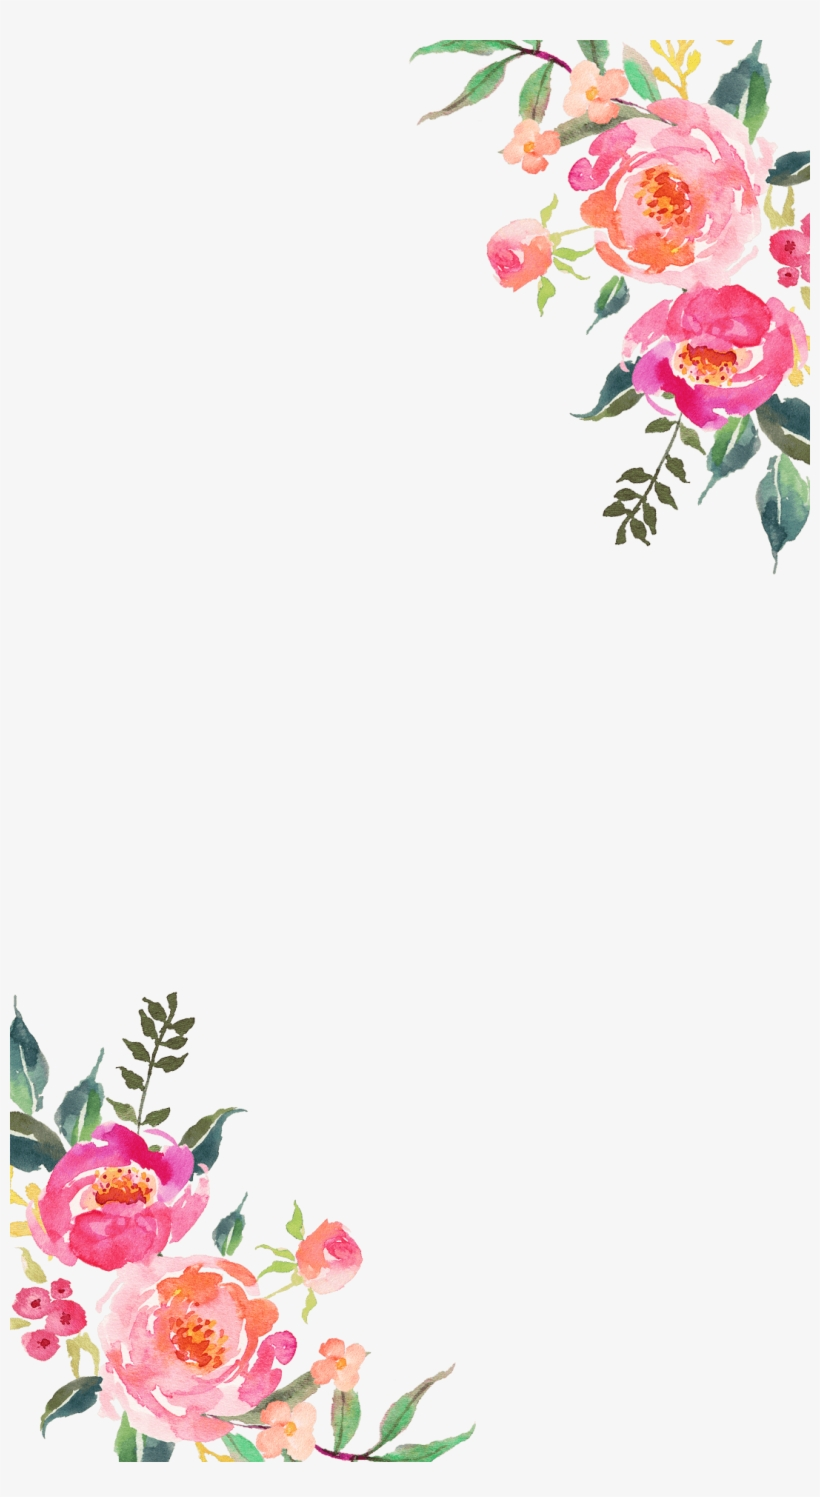 Corner Flower - Transparent Corner Flower Design, transparent png #1645109